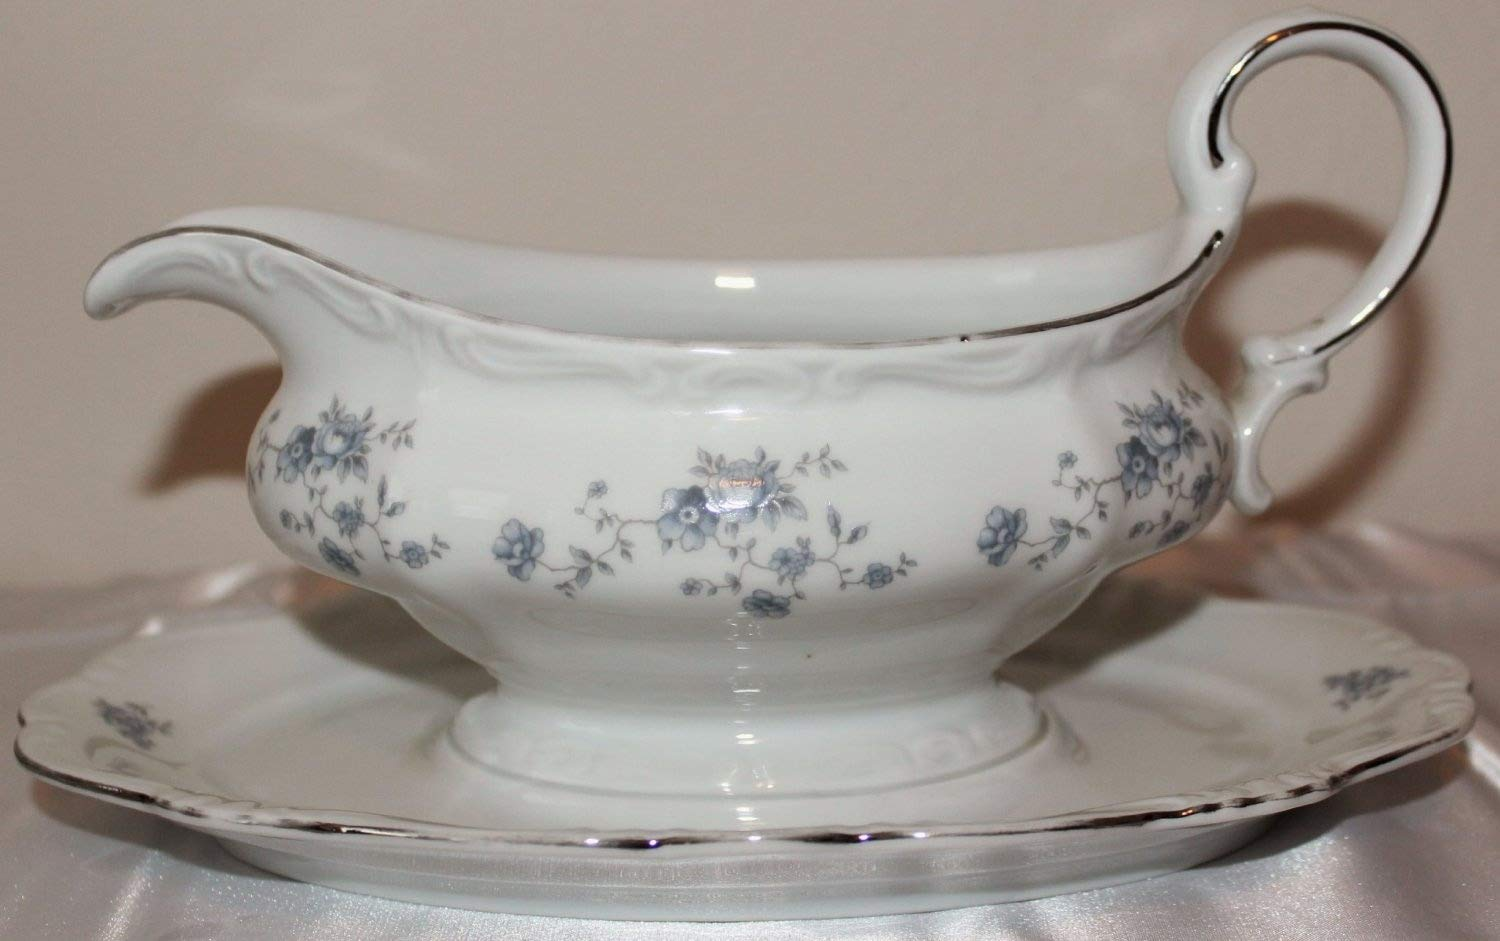 Haviland Classic Johann Haviland Bavaria Germany Blue Garland Gravy Boat w// Attached Underplate White Bone Porcelain with Floral Blue Garland and Trimmed in Platinum